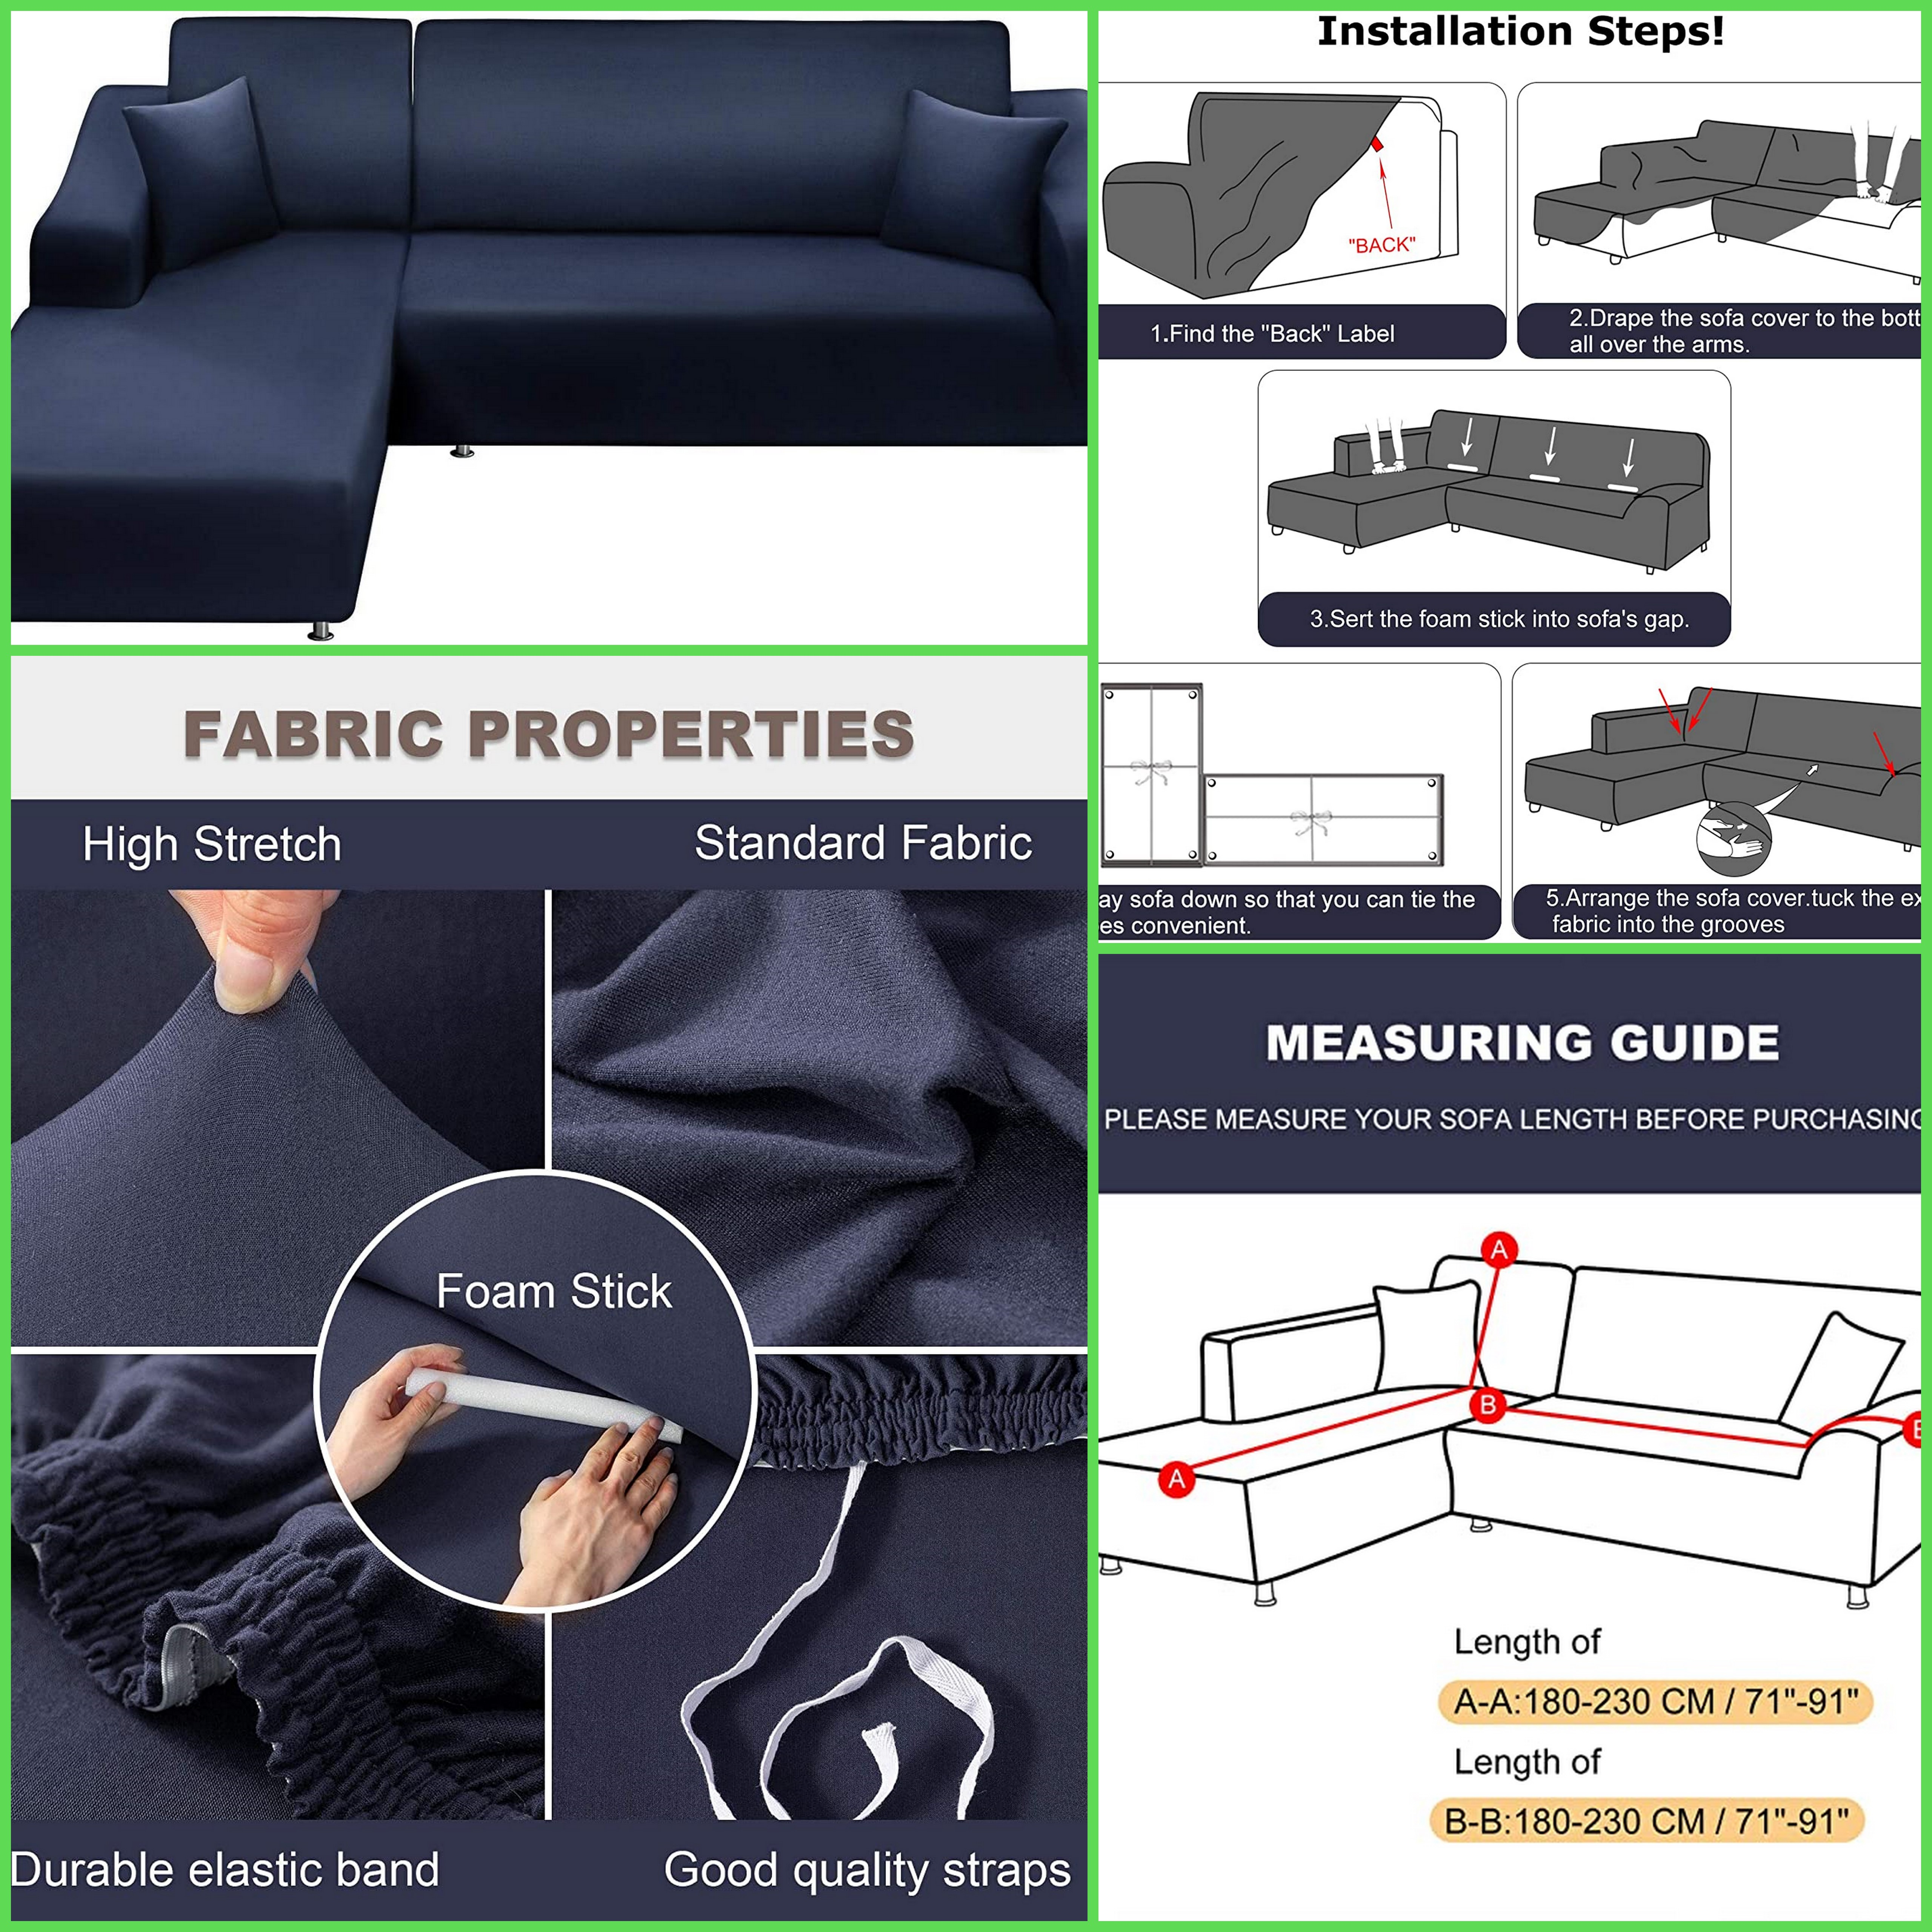 sofa slipcover sectional couch covers 2 piece l shaped sofa covers with 2 pcs pillow covers navy valued 65 free for usa product testers dm for details amzreviewtrader